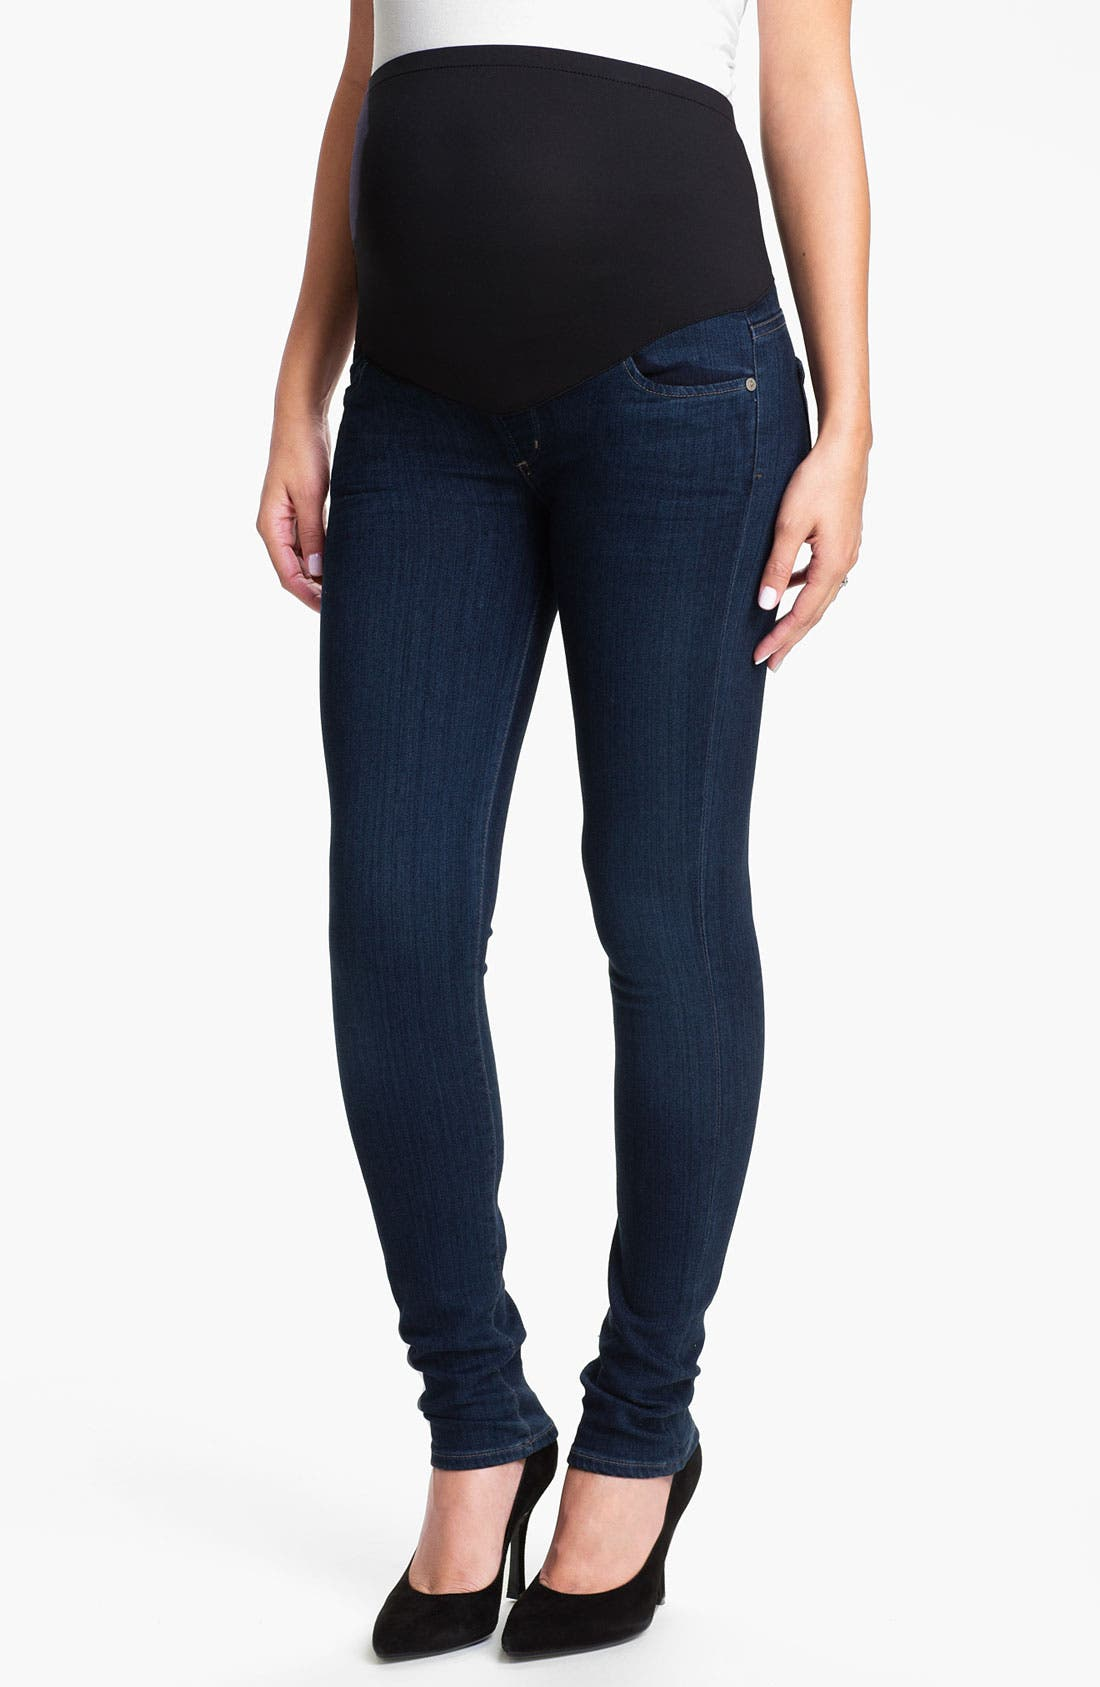 Alternate Image 1 Selected - Citizens of Humanity Skinny Maternity Jeans (Royal)